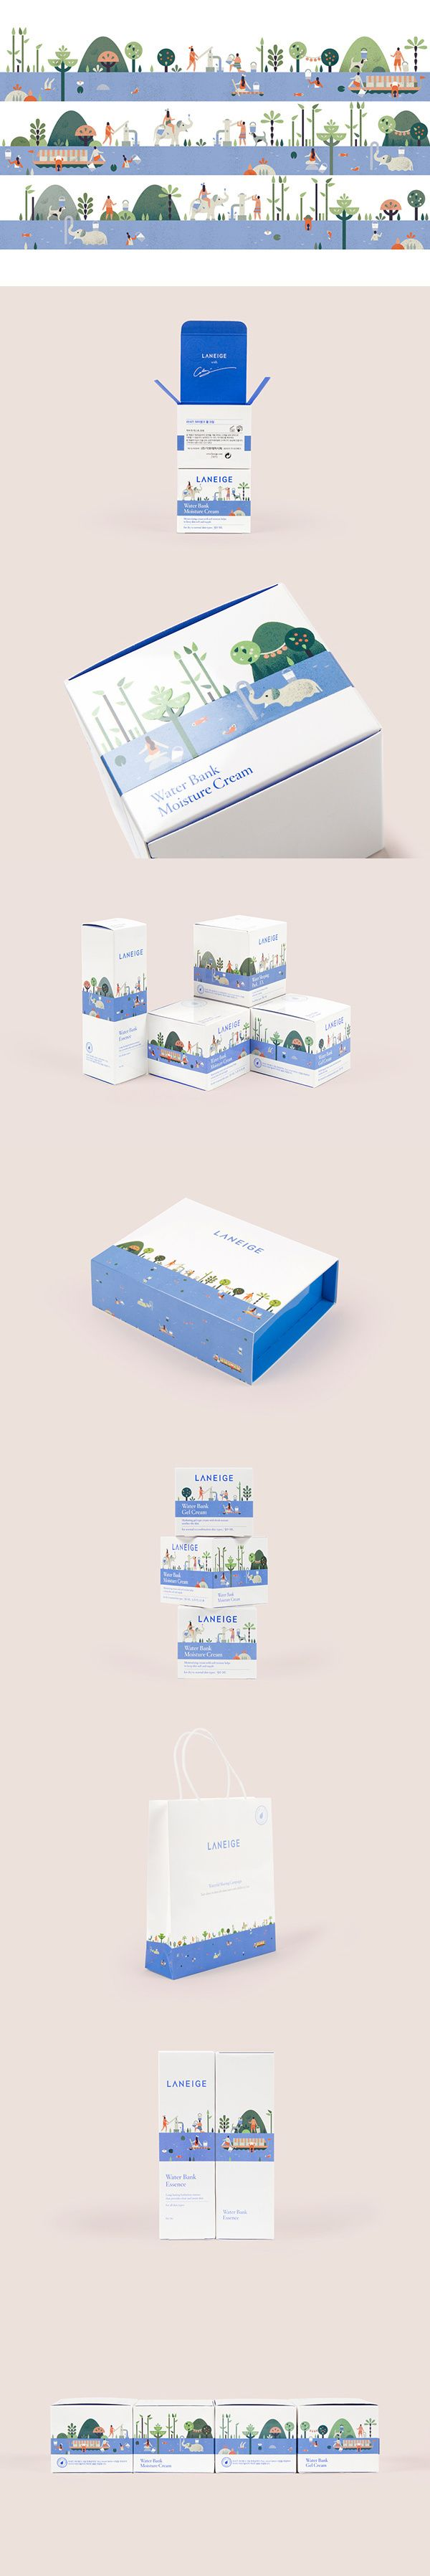 创意个性的扁平化清新卡通包装设计作品 Laneige cosmetics with cute illustrations on the packaging PD